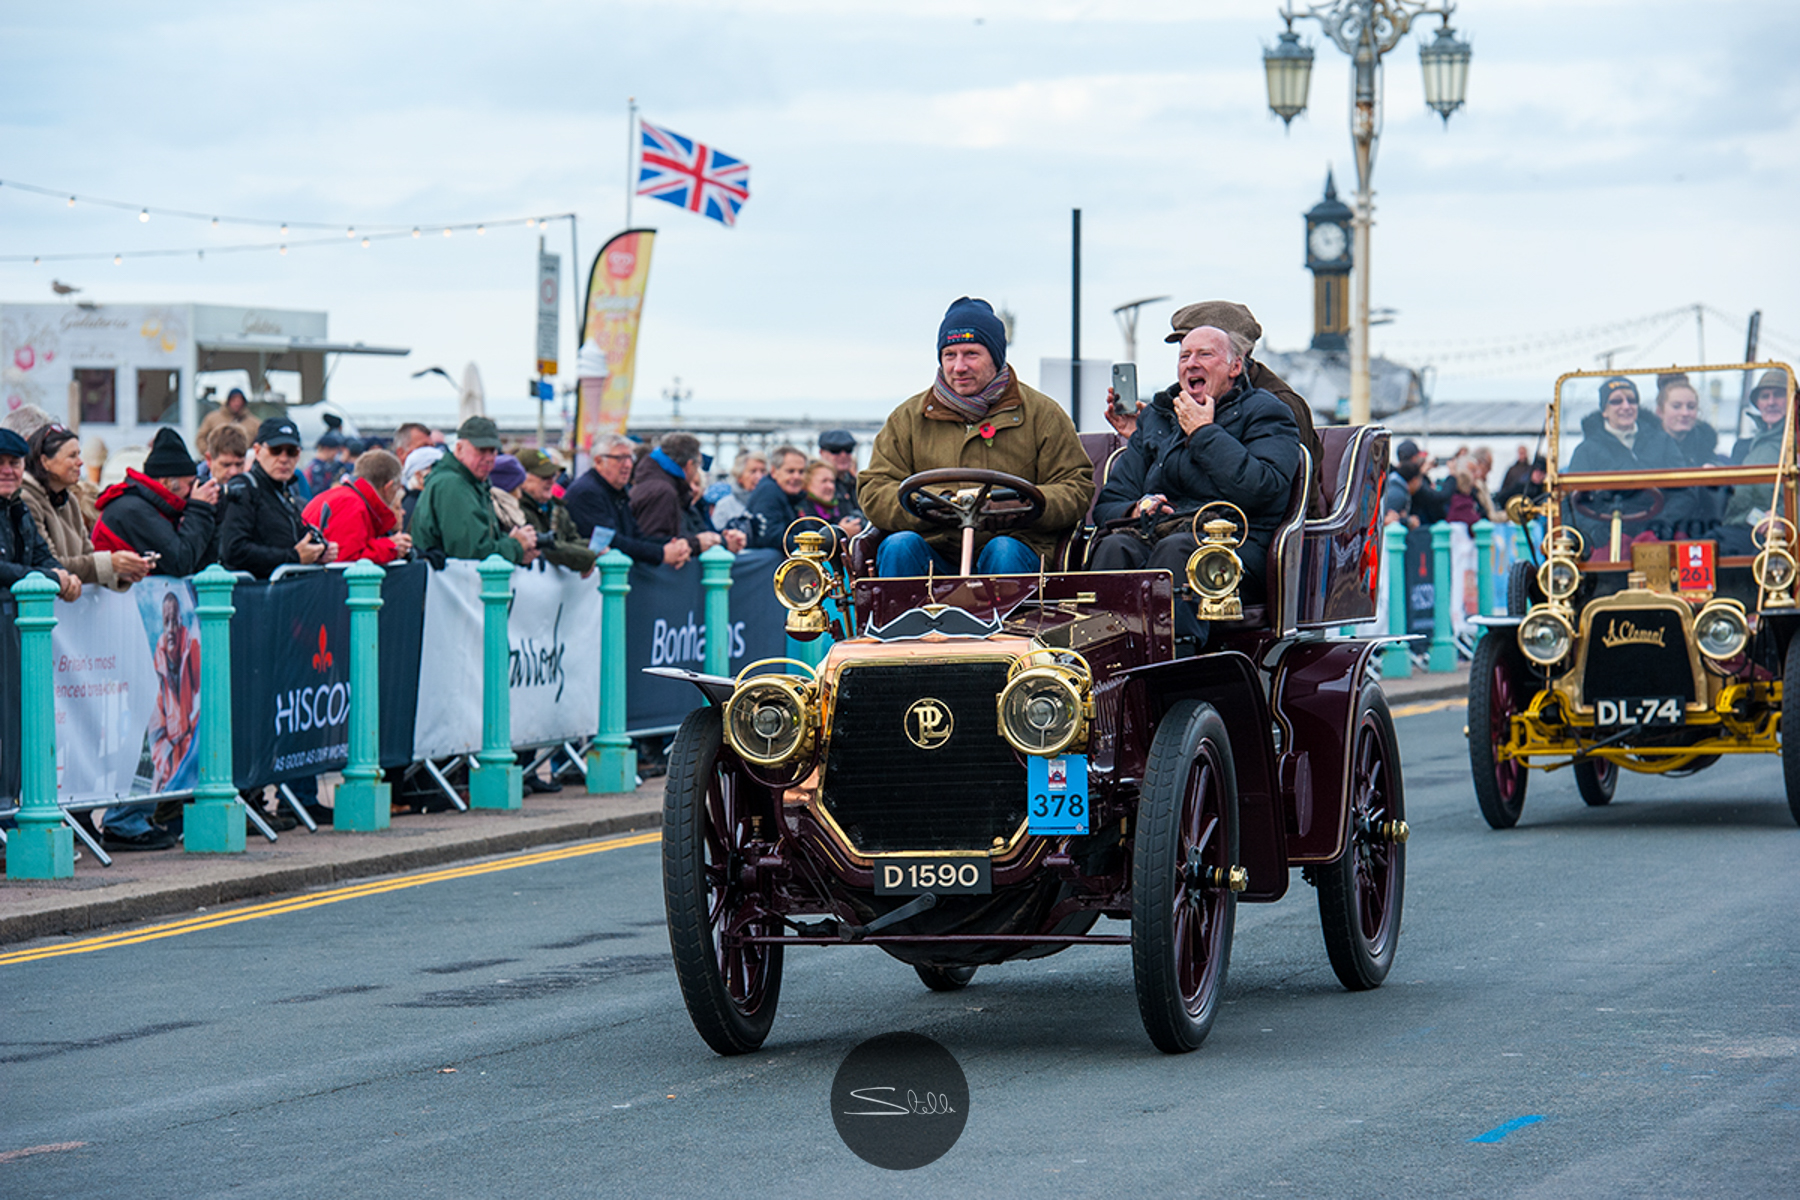 Christian Horner, Team Principal of the Red Bull Racing Formula One Team, driving a 1904 Panhard et Levassor owned by Lord Irvine Laidlaw, 4 Cylinders 15 HP.